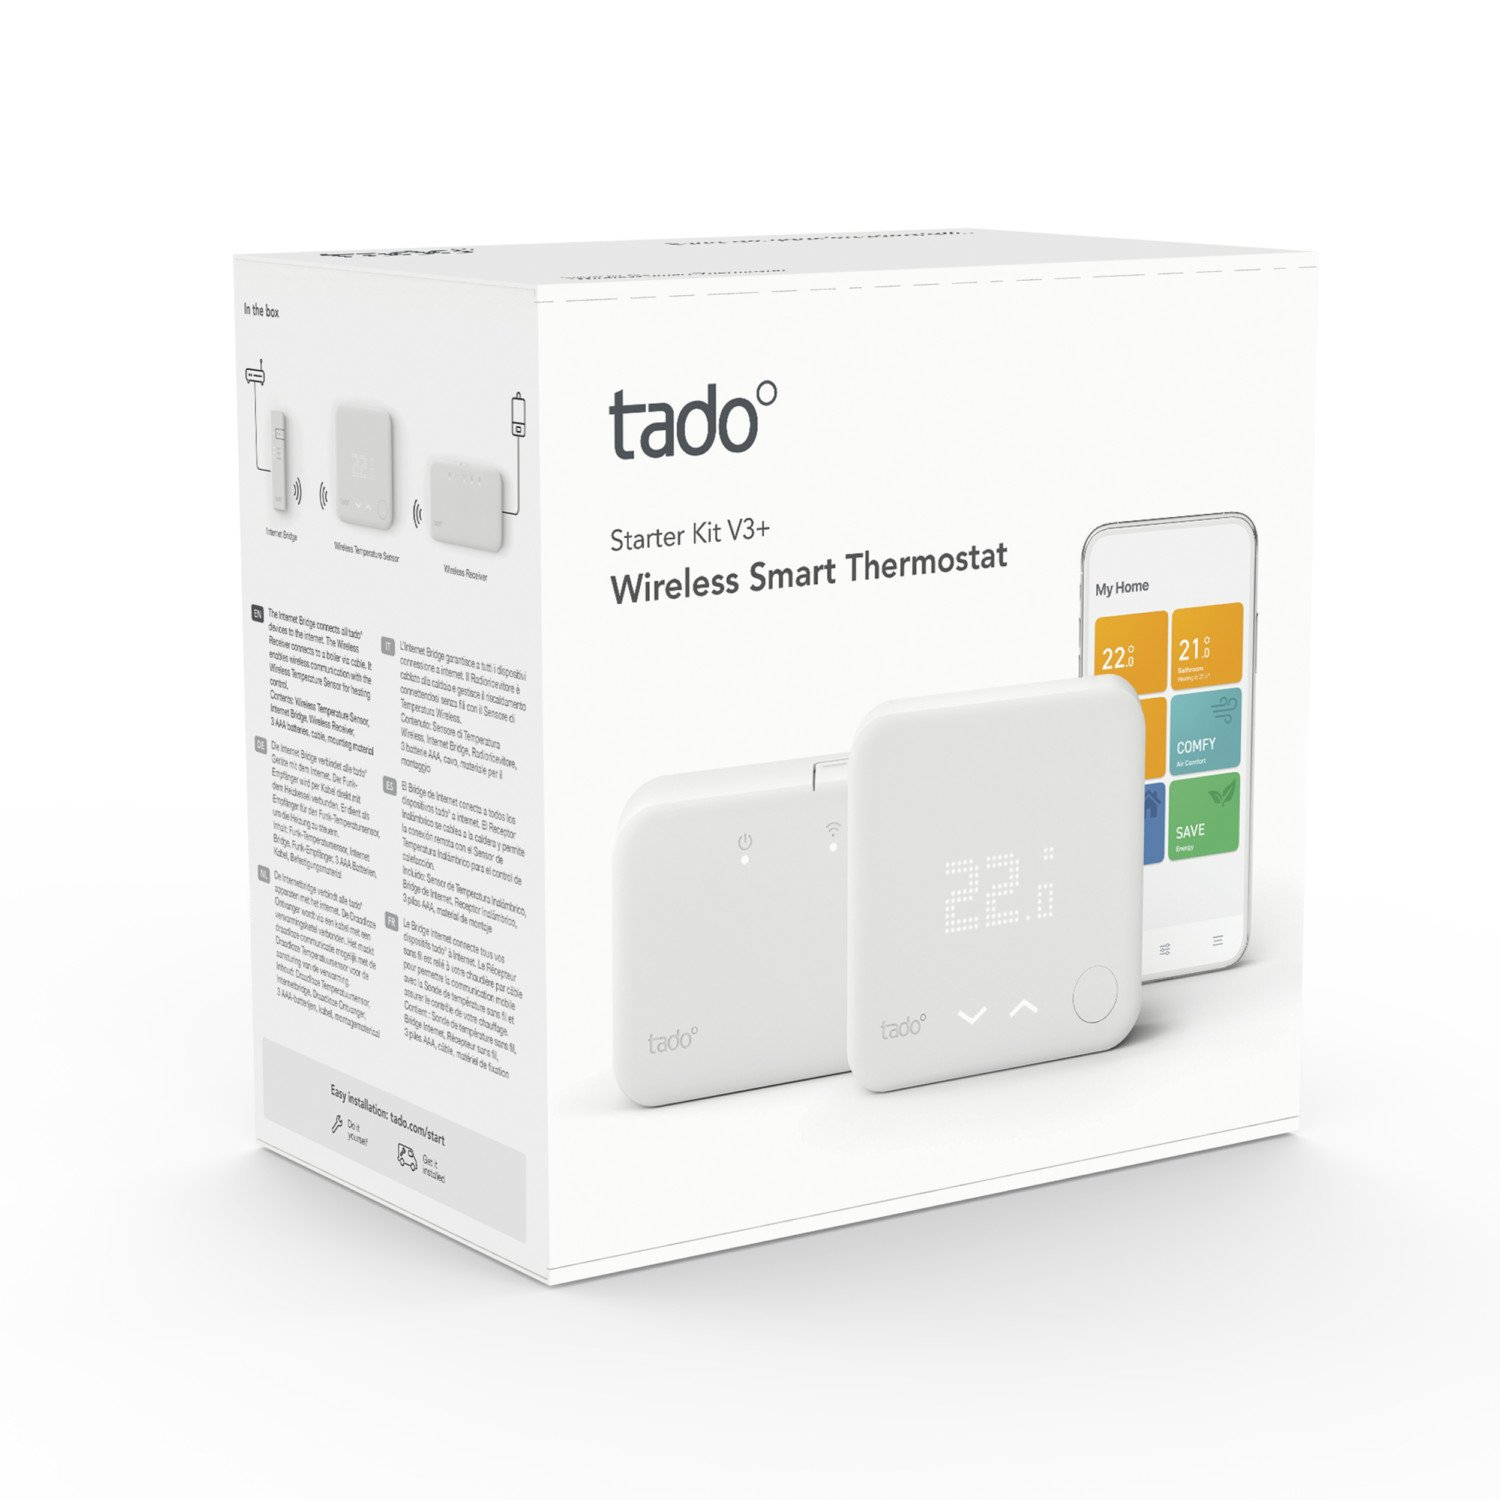 tado Smart Thermostat Starter Kit V3 wireless